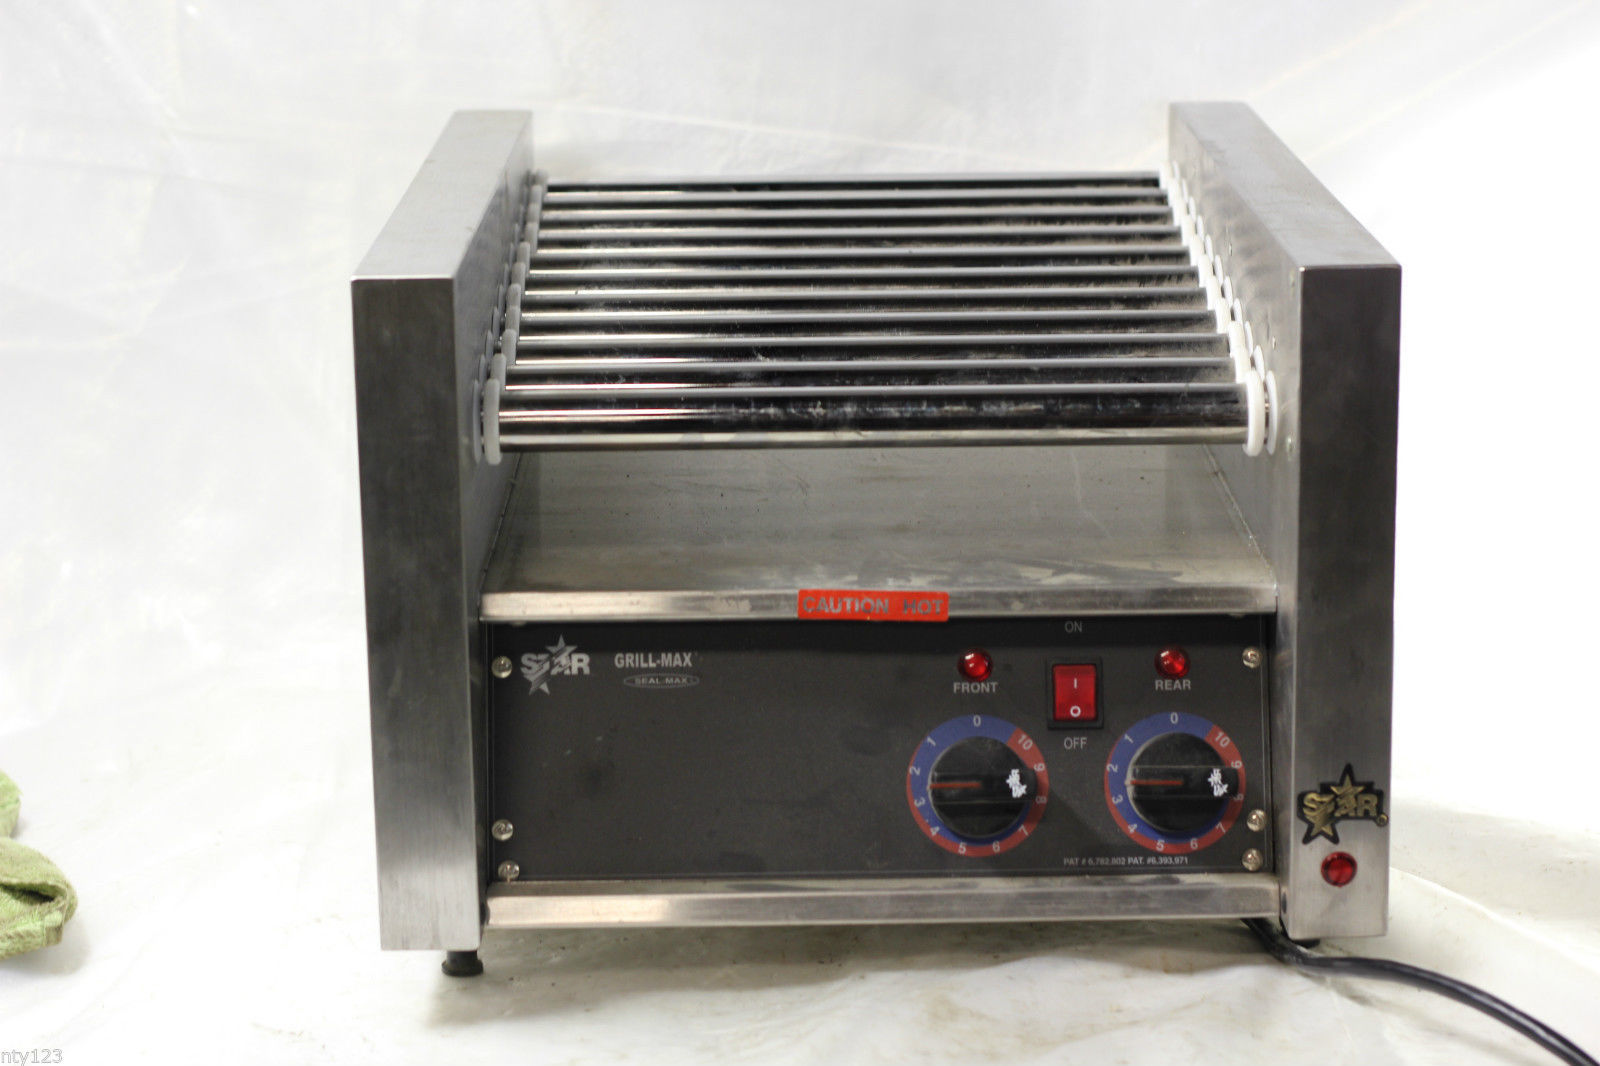 Star Grill Max, Seal Max No. 20